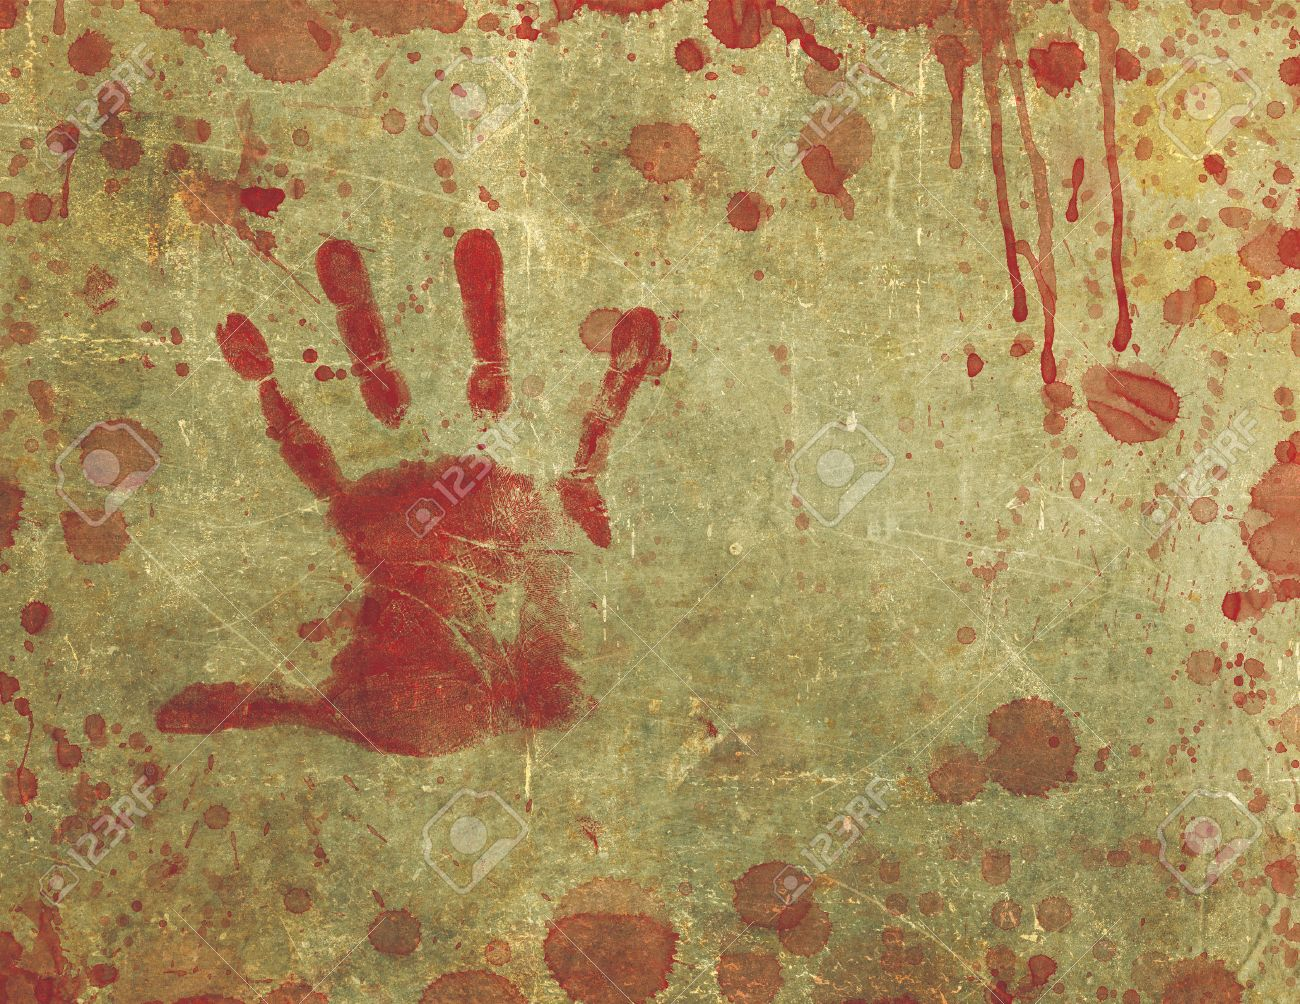 Illustration Of A Background Texture With Bloody Hand Print And Stock Photo Picture And Royalty Free Image Image 40612395 Source (cs:s) effect mod in the blood decals category, submitted by sgt gyn. illustration of a background texture with bloody hand print and